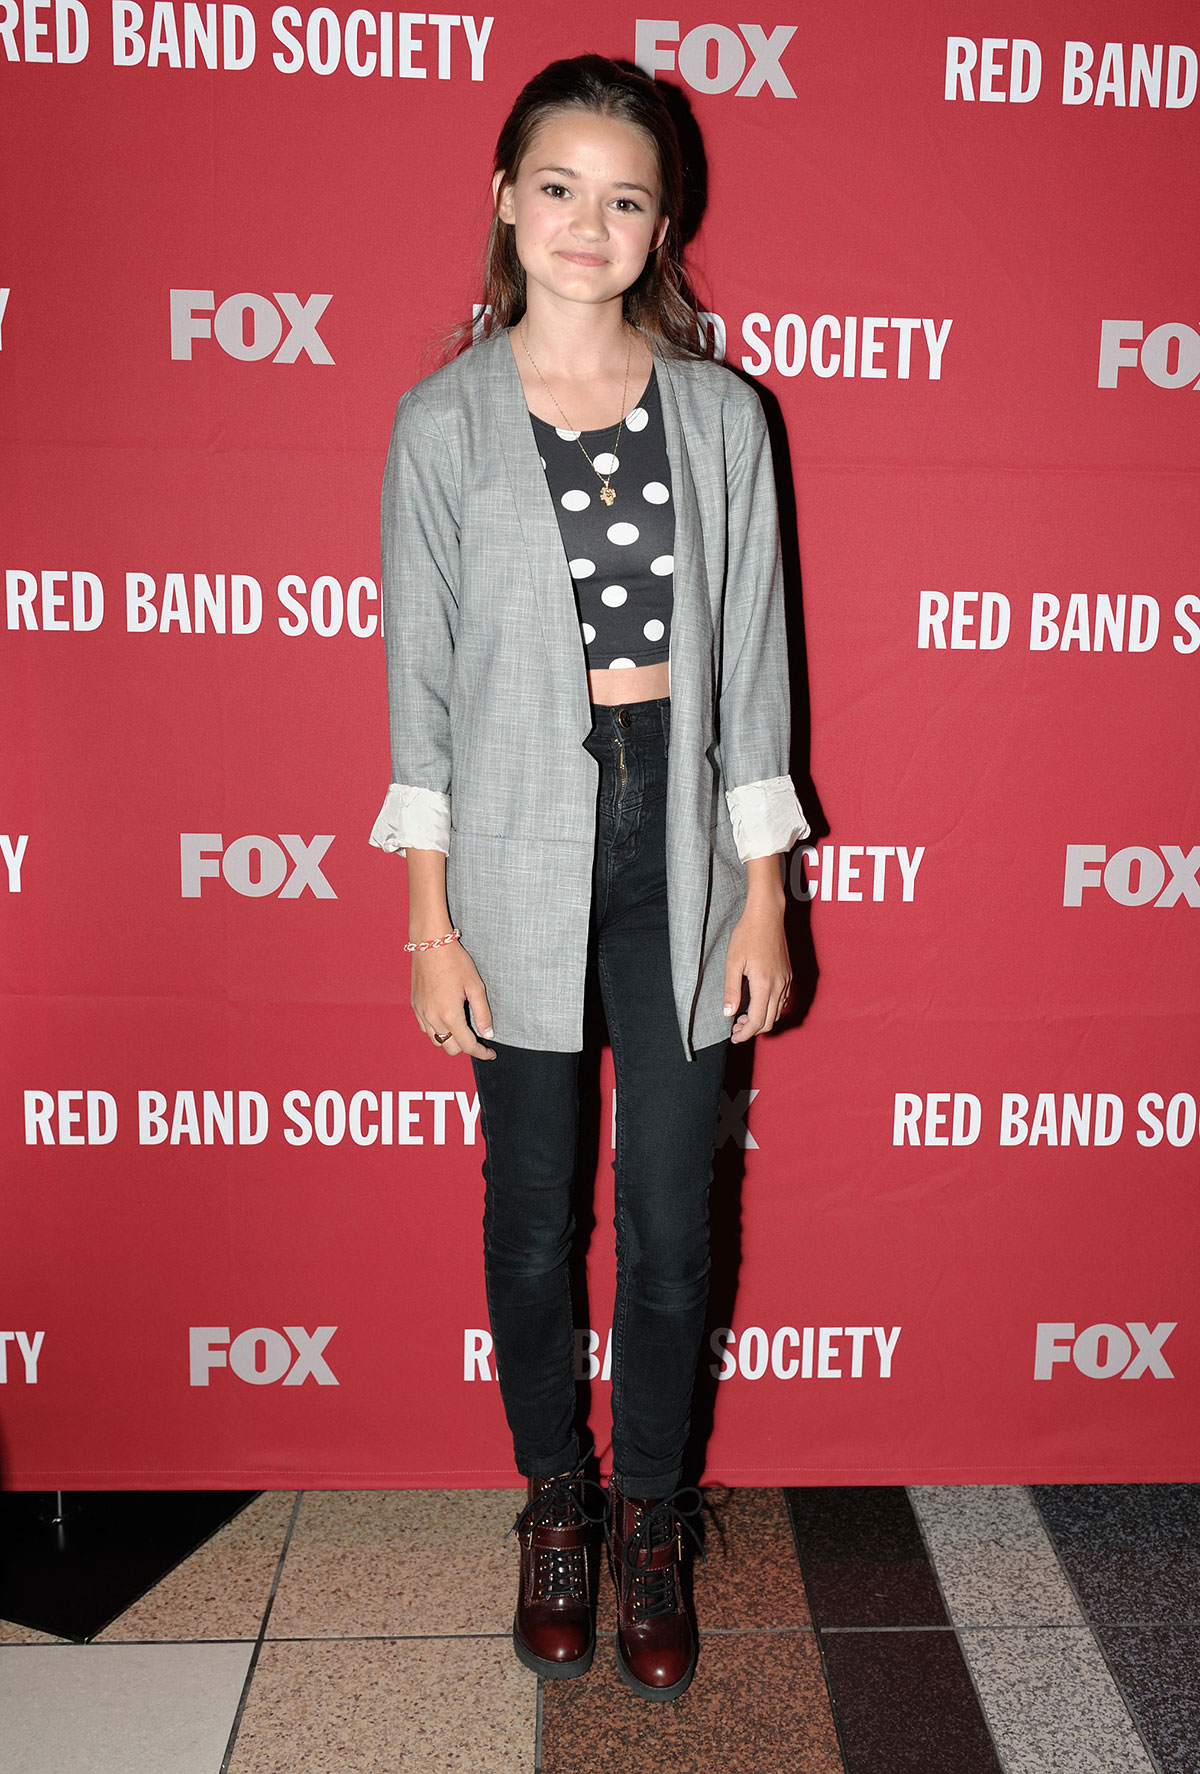 Rebecca Rittenhouse attends the Red Band Society screening